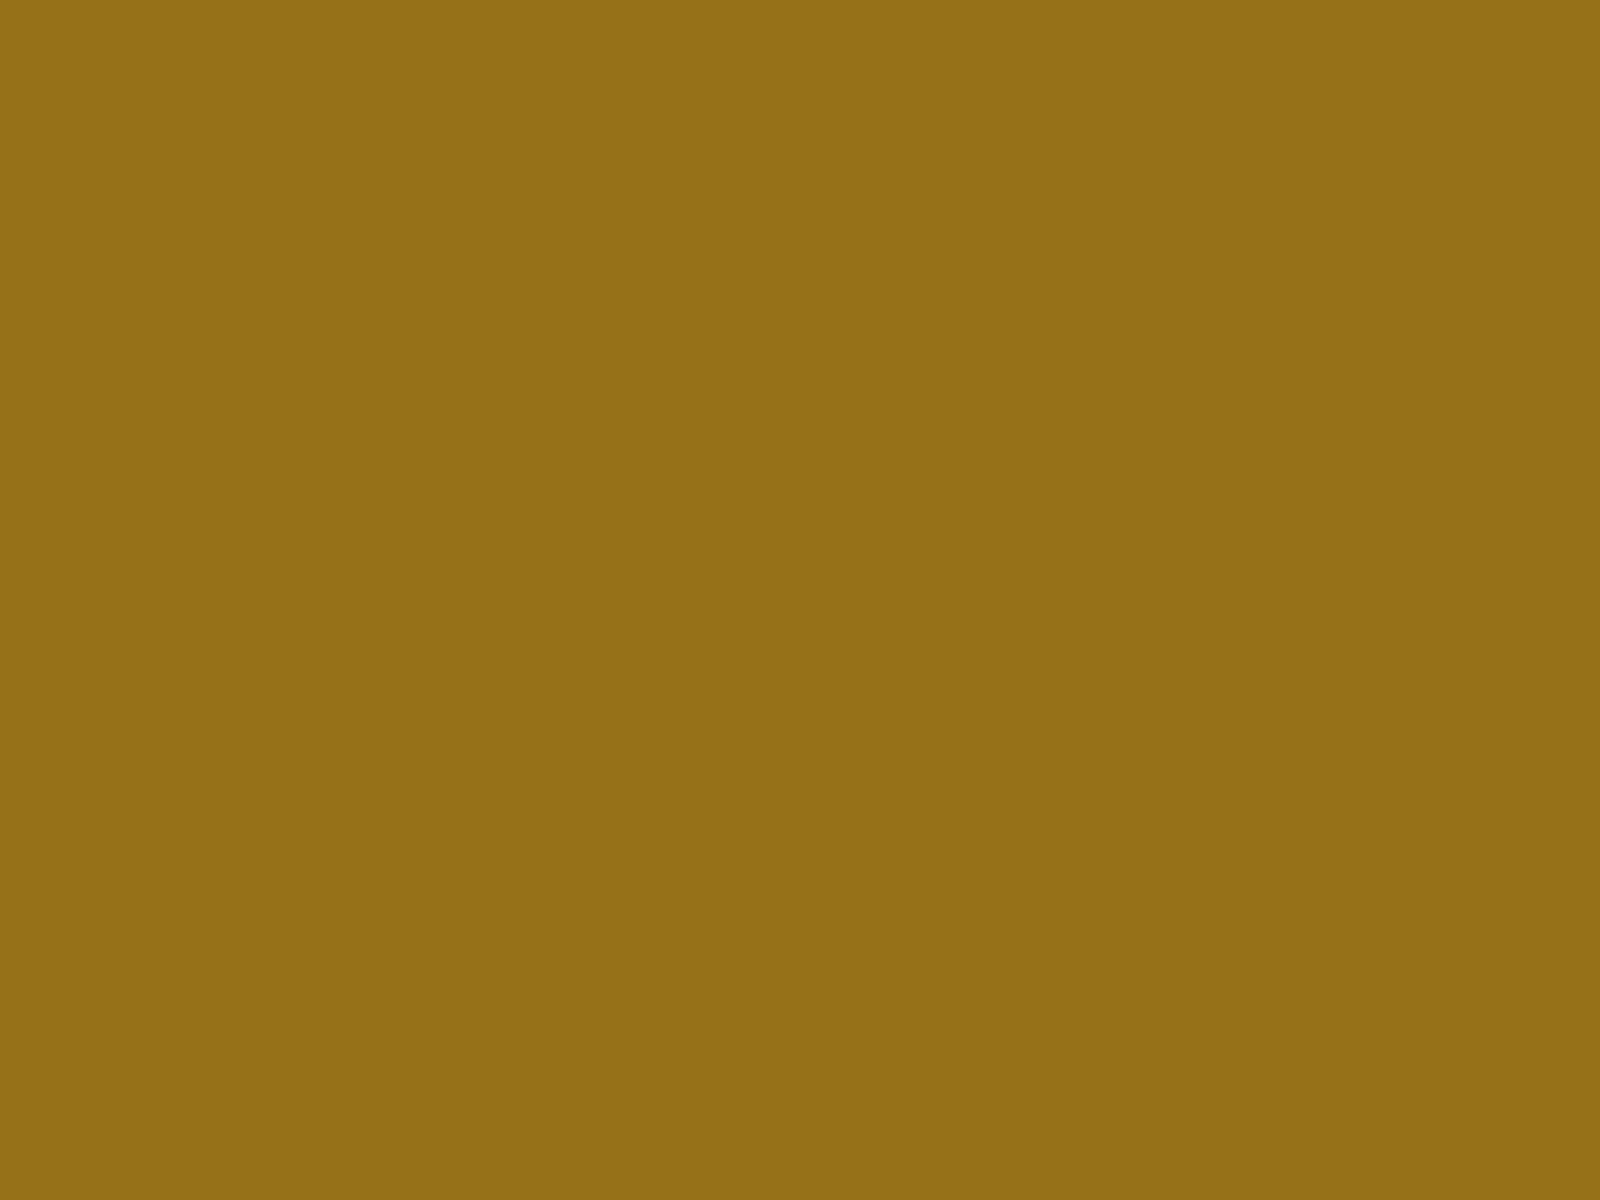 1600x1200 Drab Solid Color Background